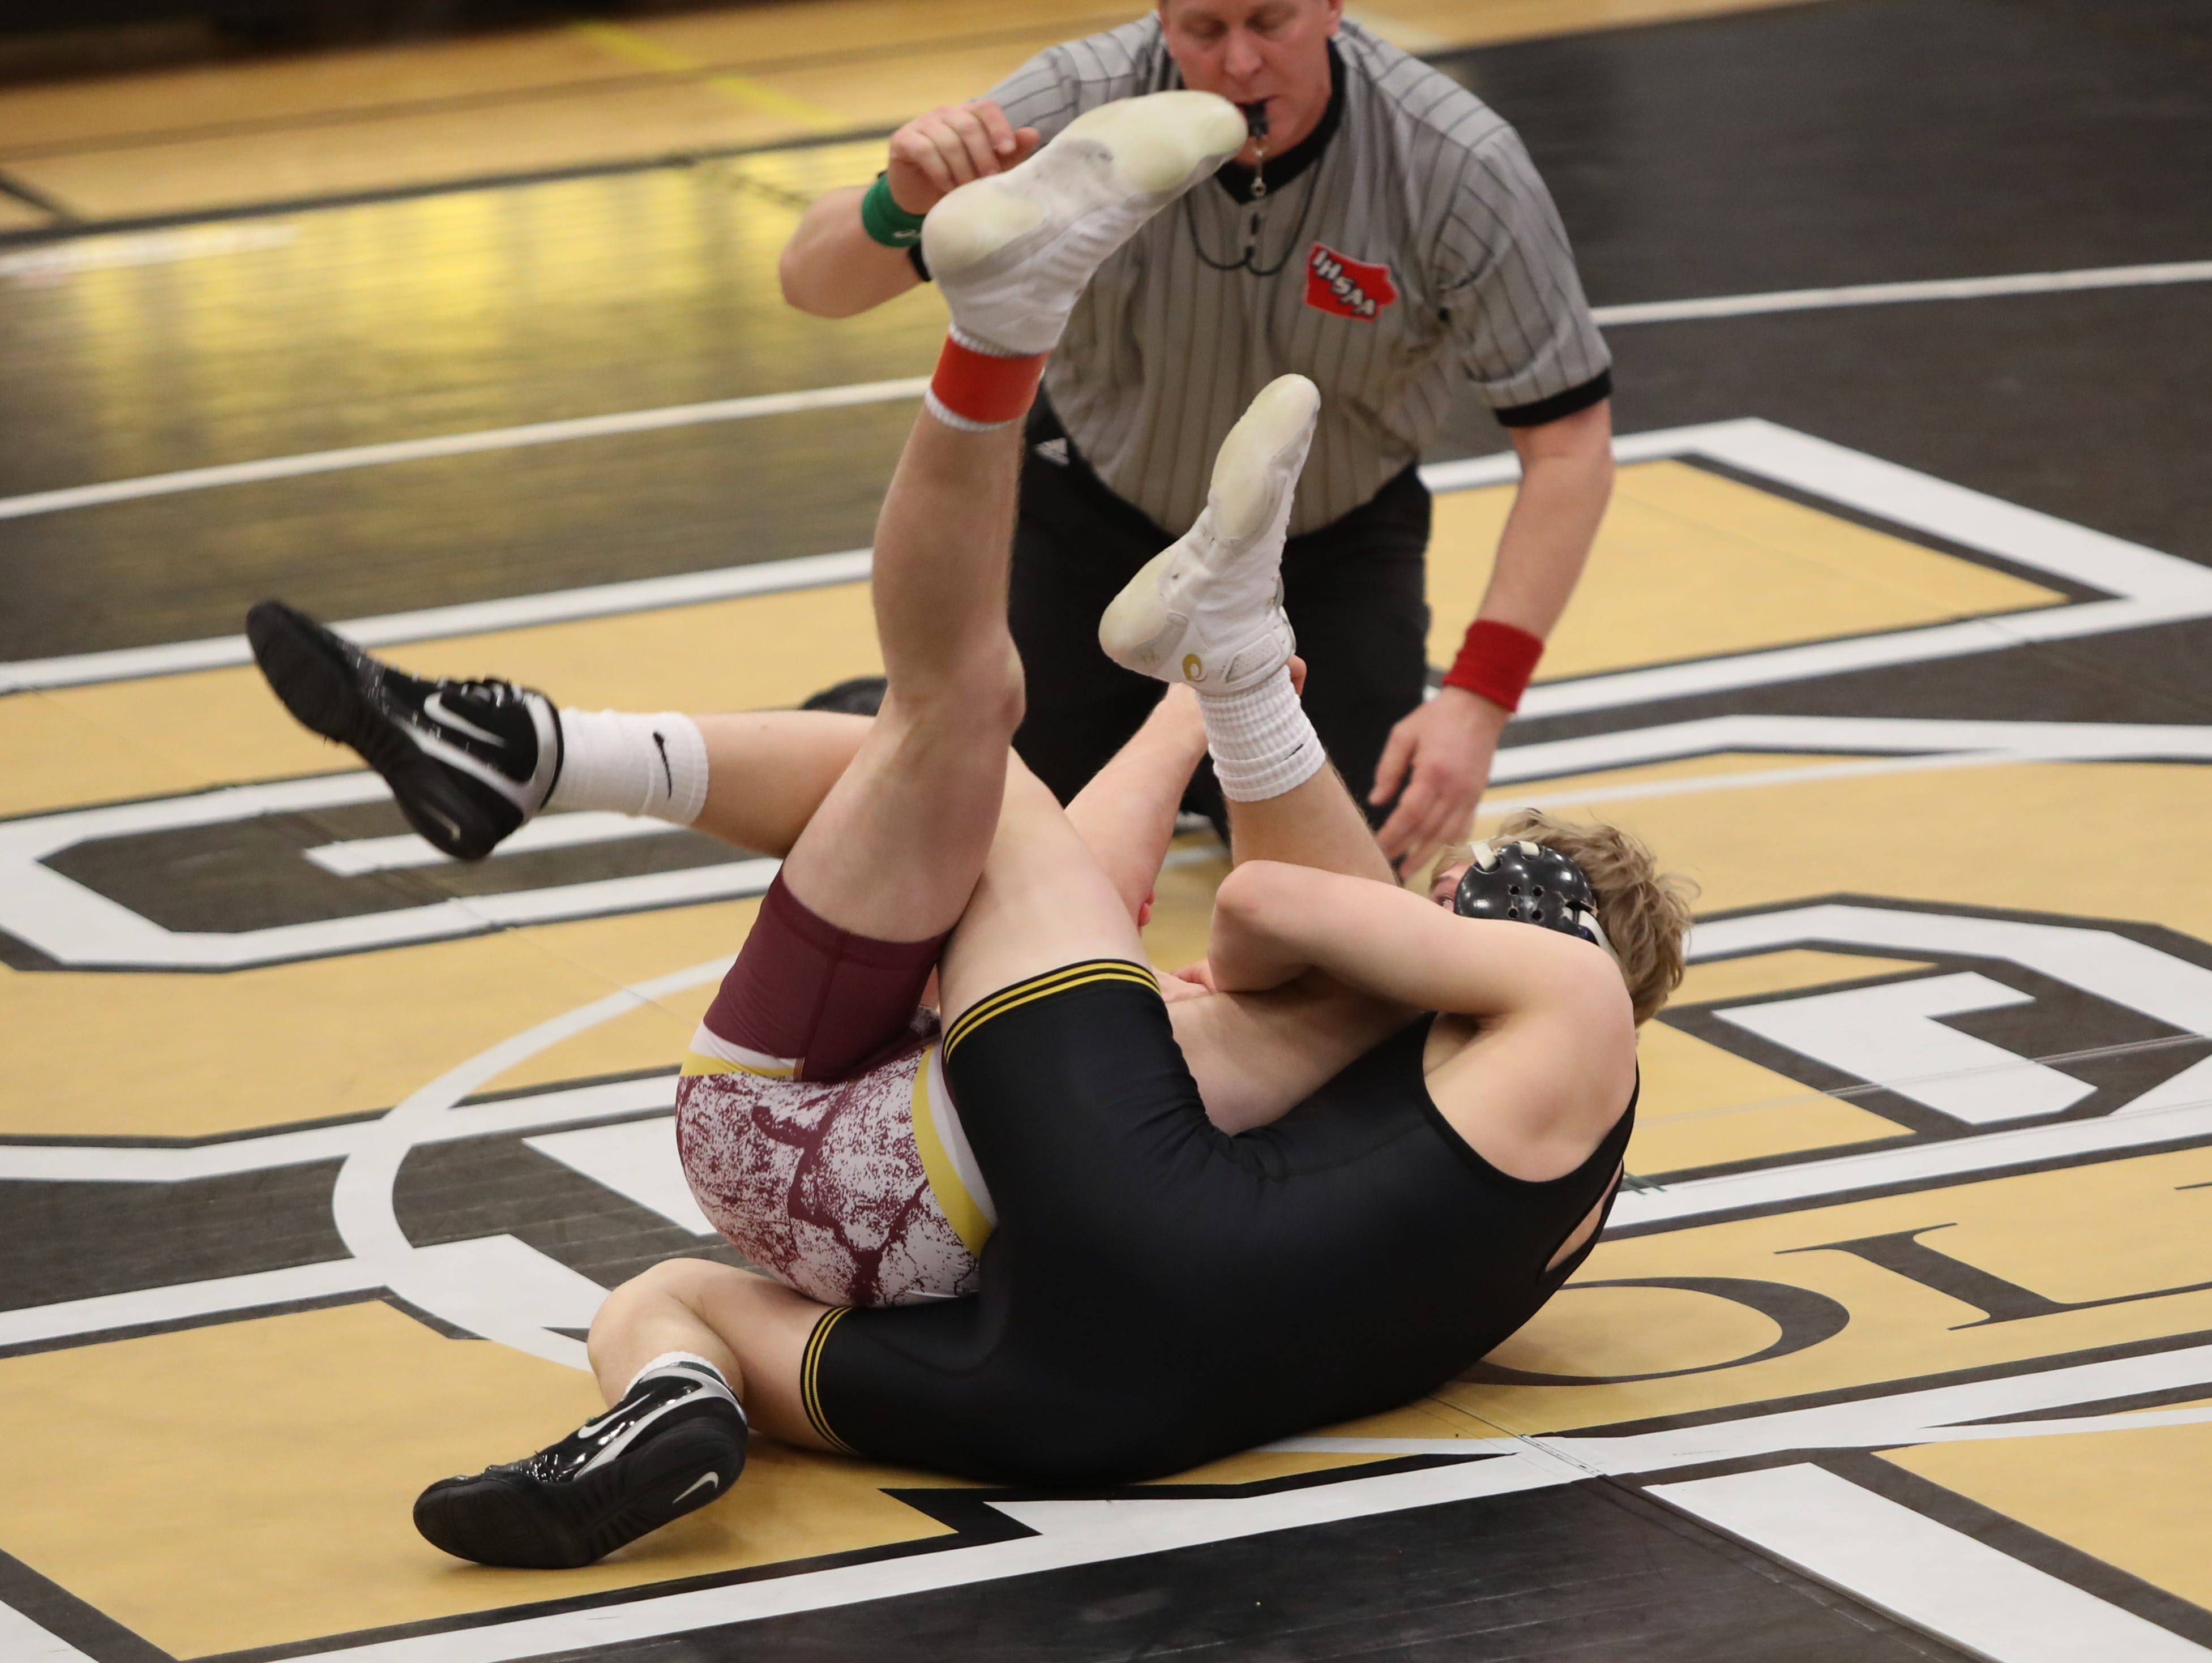 Southeast Polk's Lance Runyon (152 pounds) pins Ankeny's Daniel Rose in 42 seconds. Southeast Polk defeated Ankeny 57-17 in a Class 3A regional dual Feb. 6 at Southeast Polk.